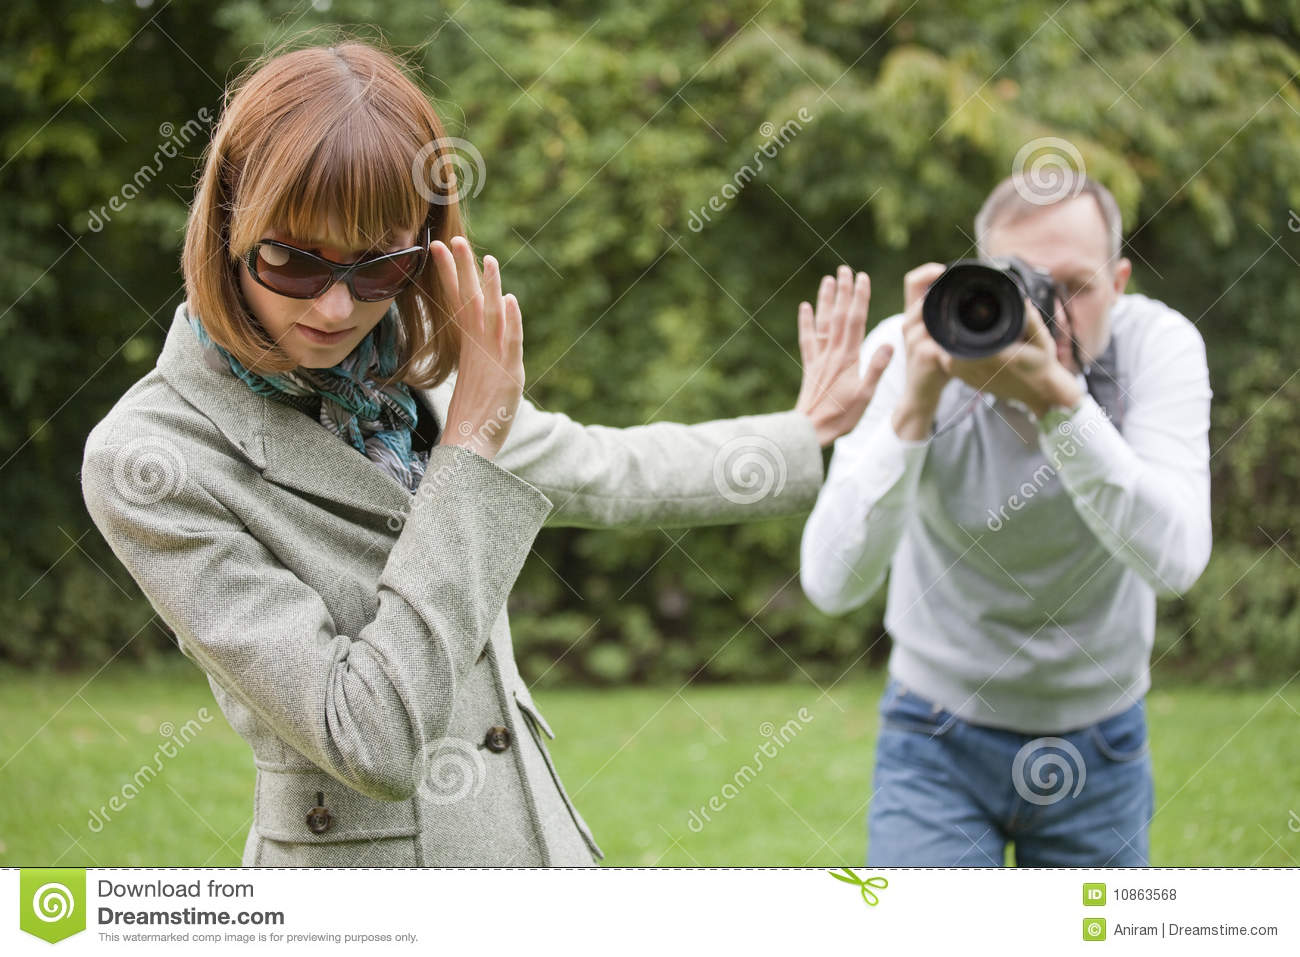 Paparazzi takes a picture from woman